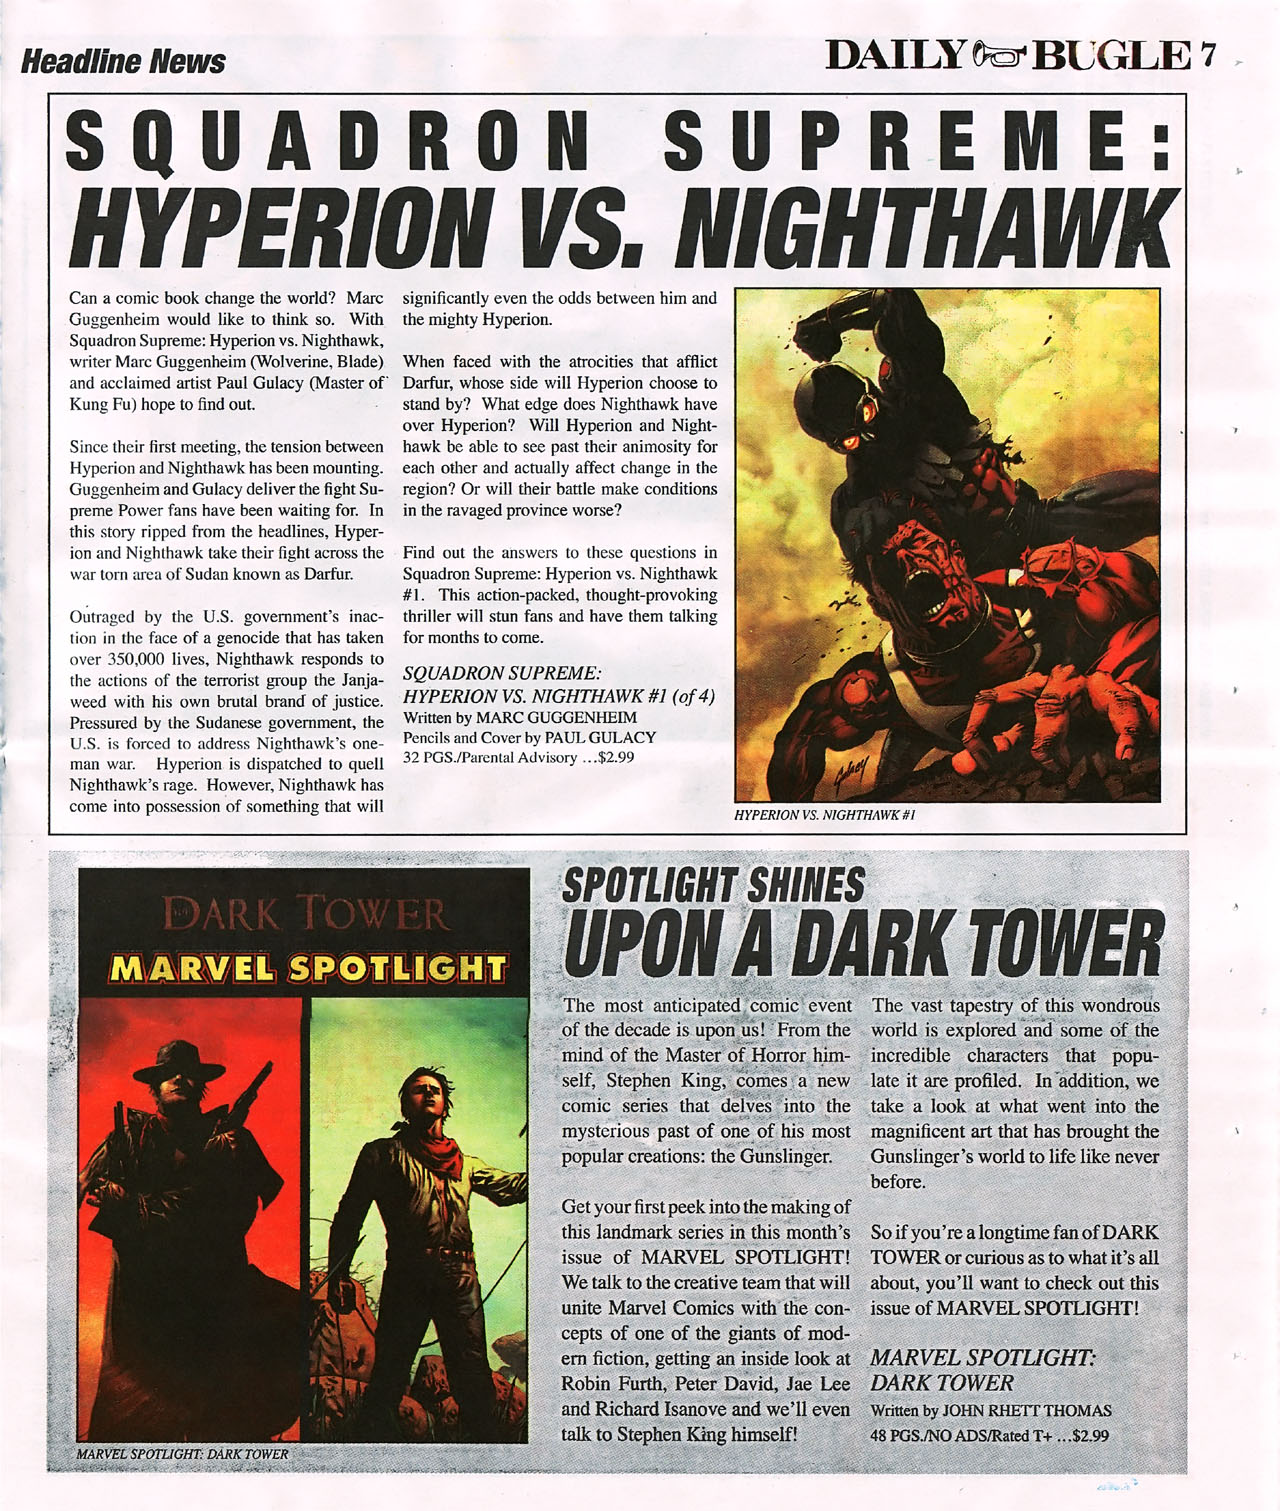 Read online Daily Bugle (2006) comic -  Issue #4 - 7